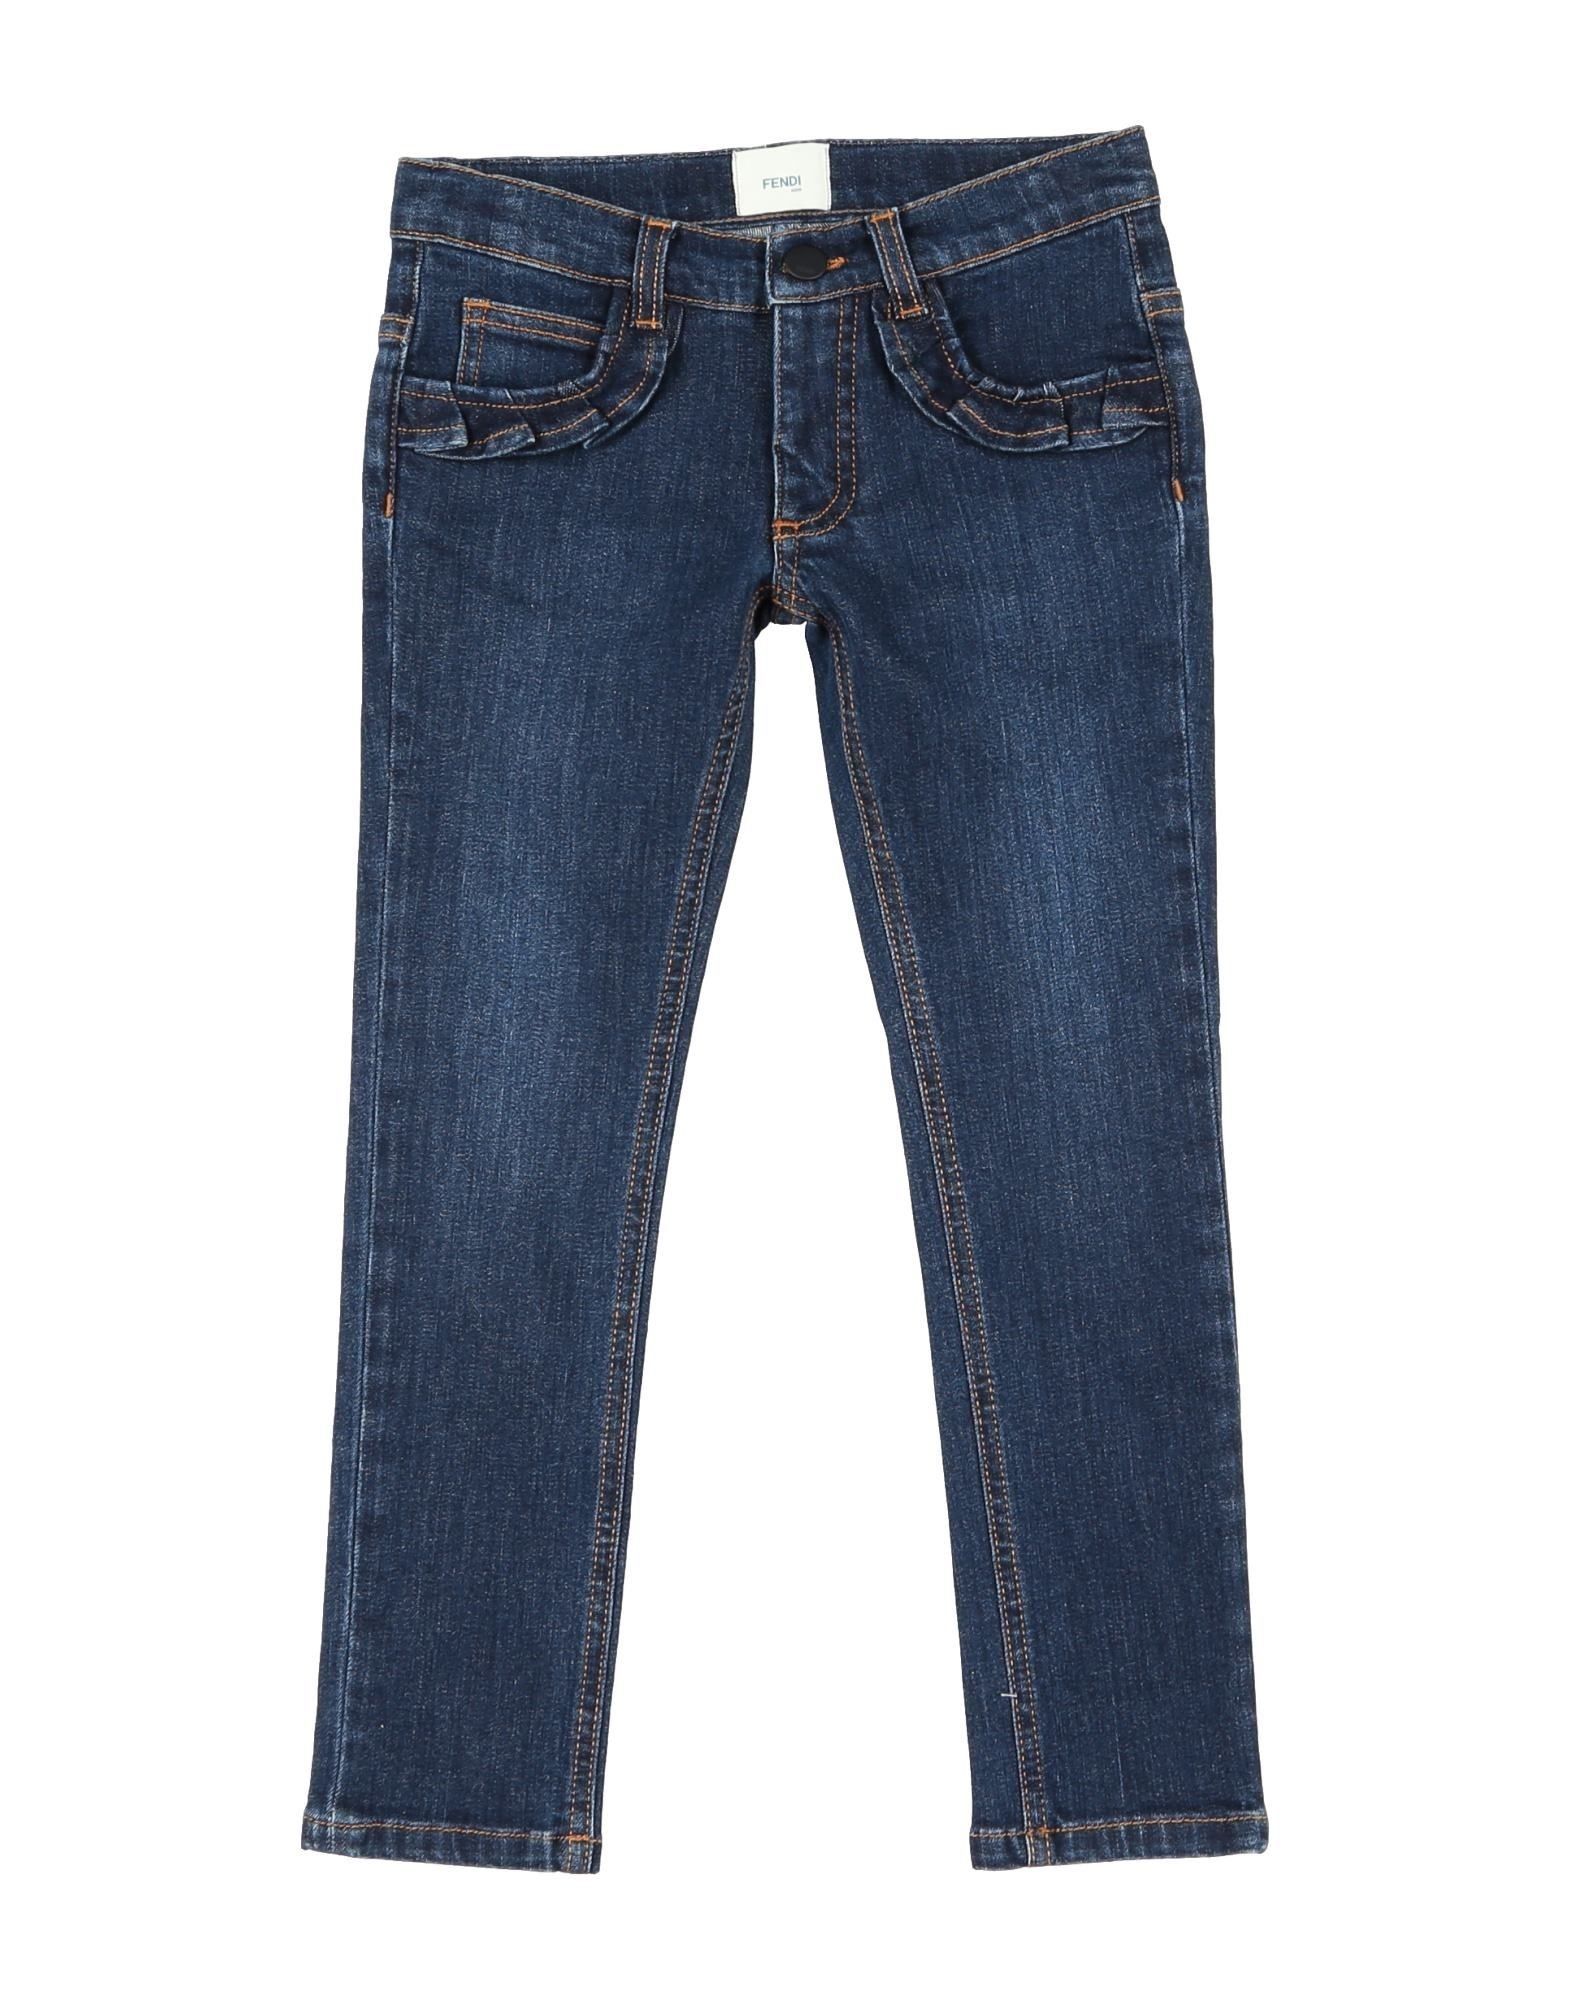 FENDI | FENDI Denim Pants 42740248 | Goxip